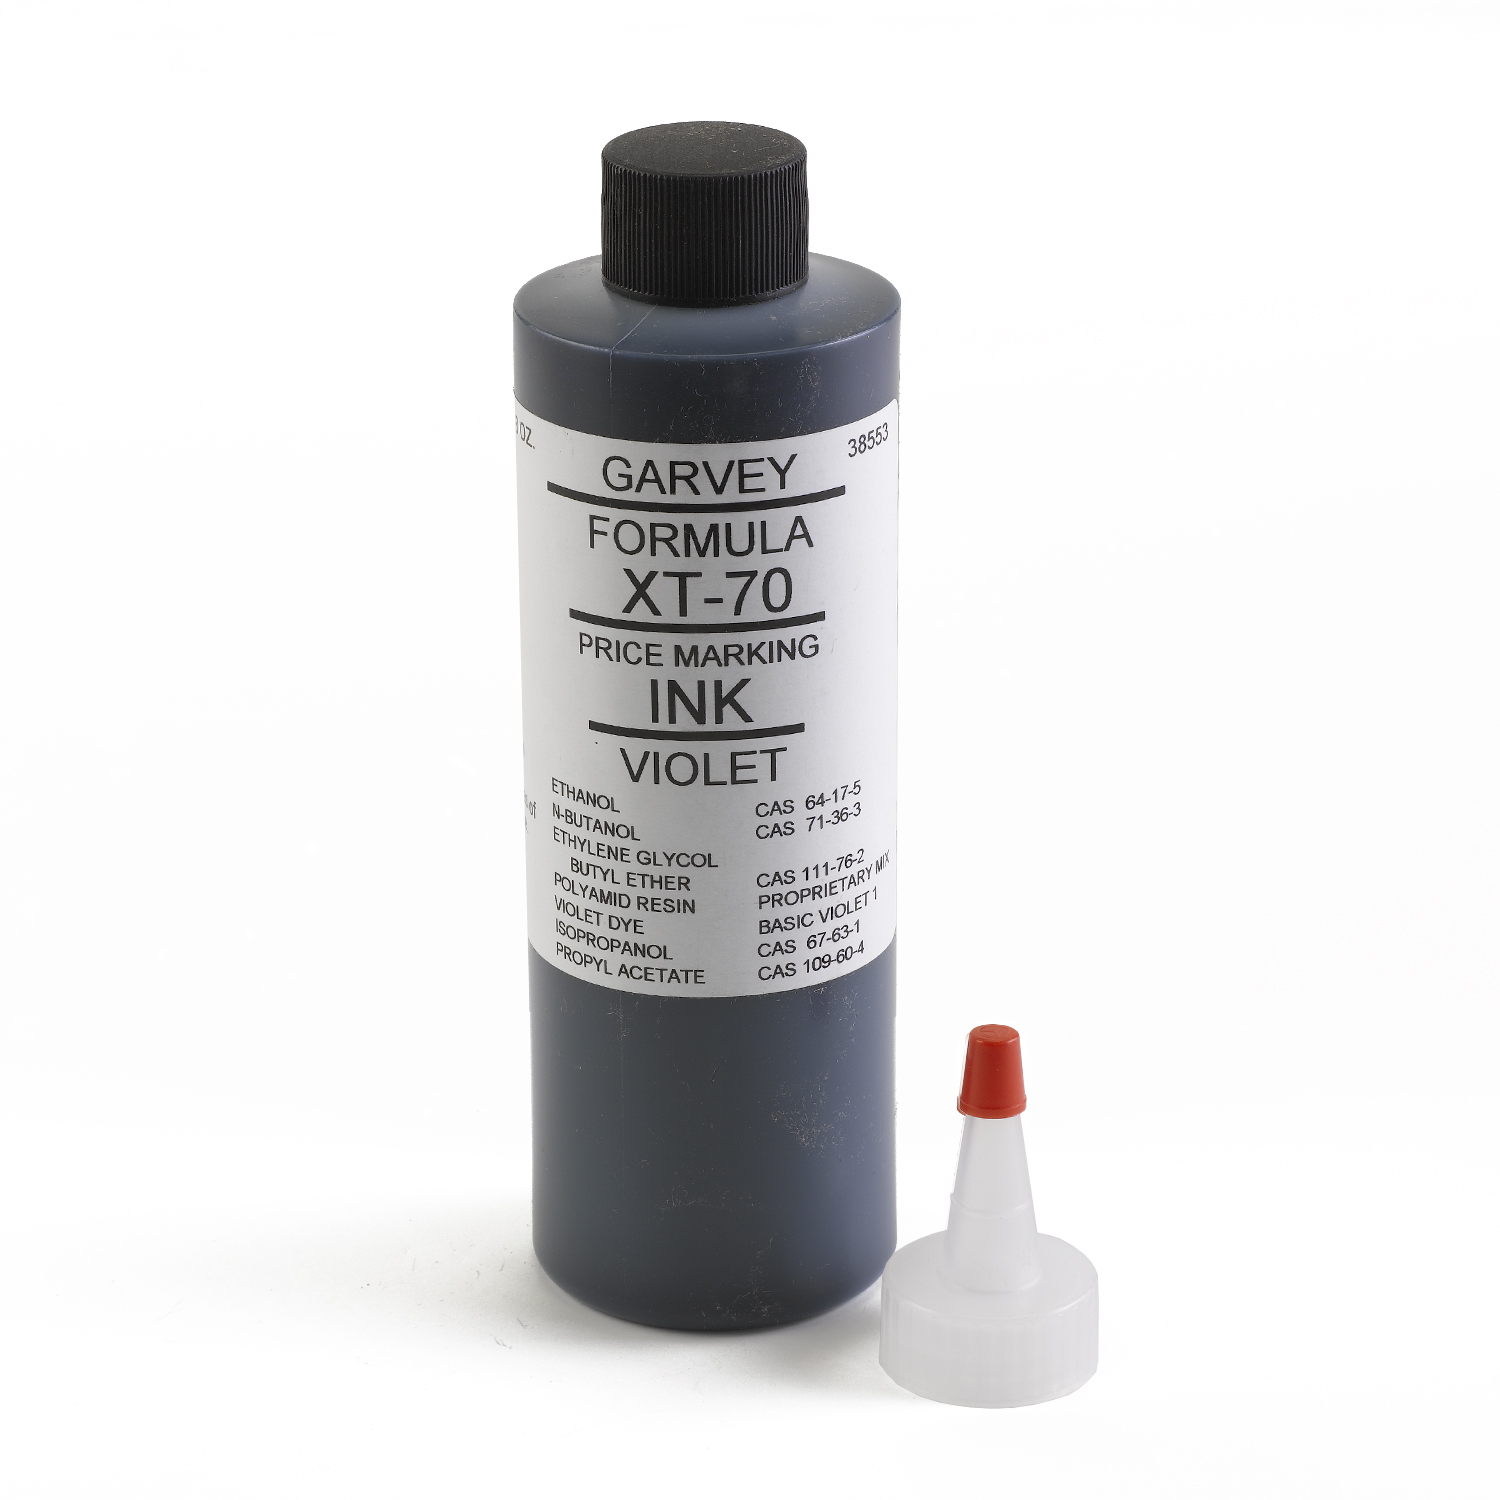 Garvey Violet Price Marking Ink 8 oz - INK-38553